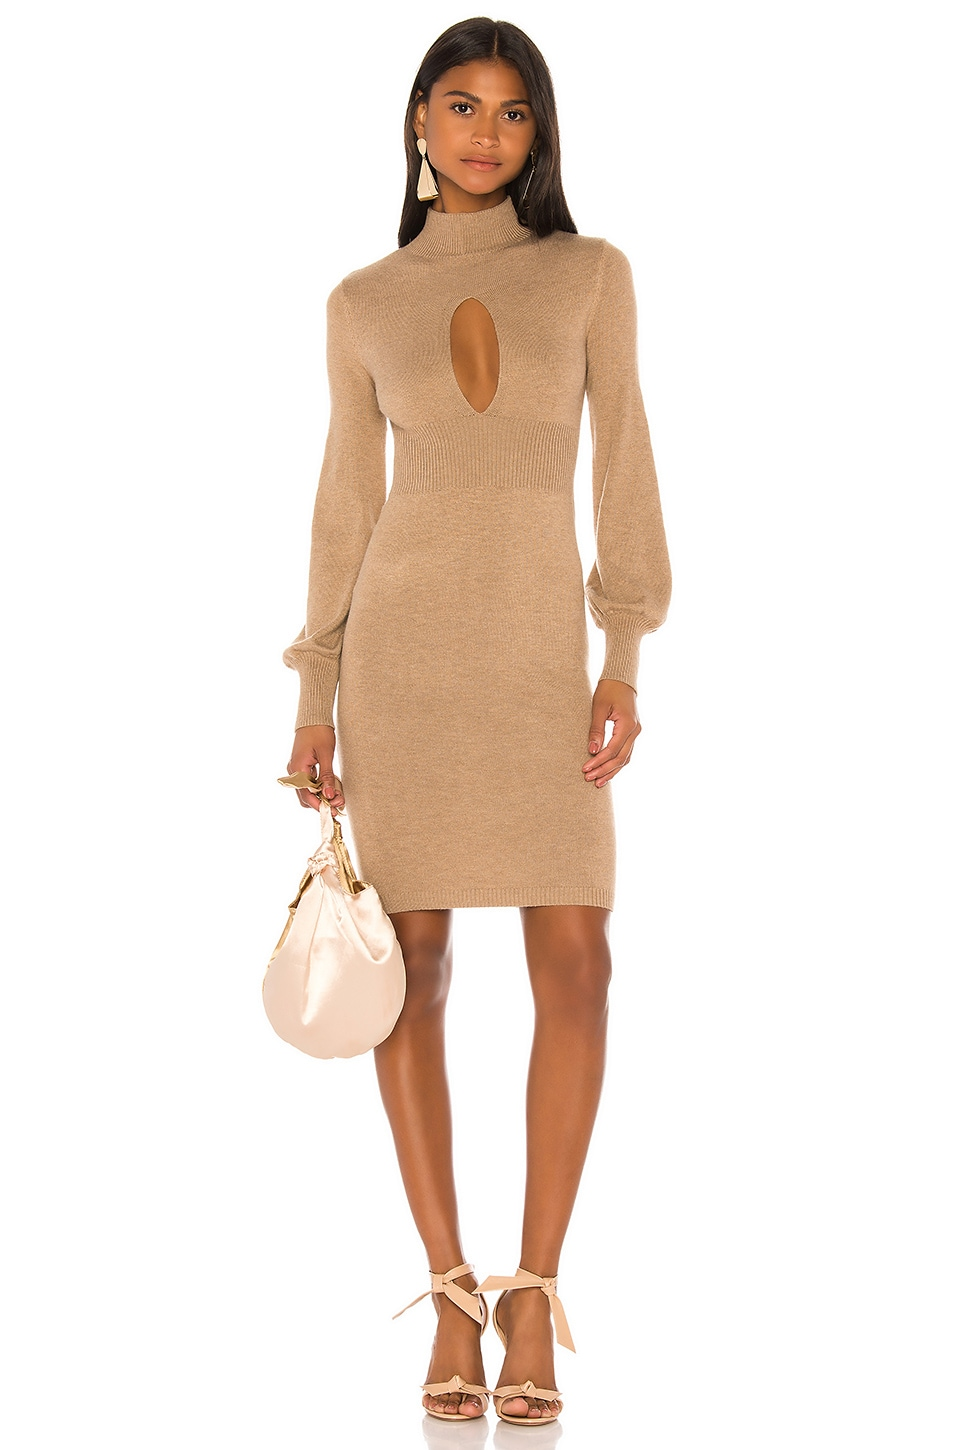 Camila Coelho Elise Dress in Camel